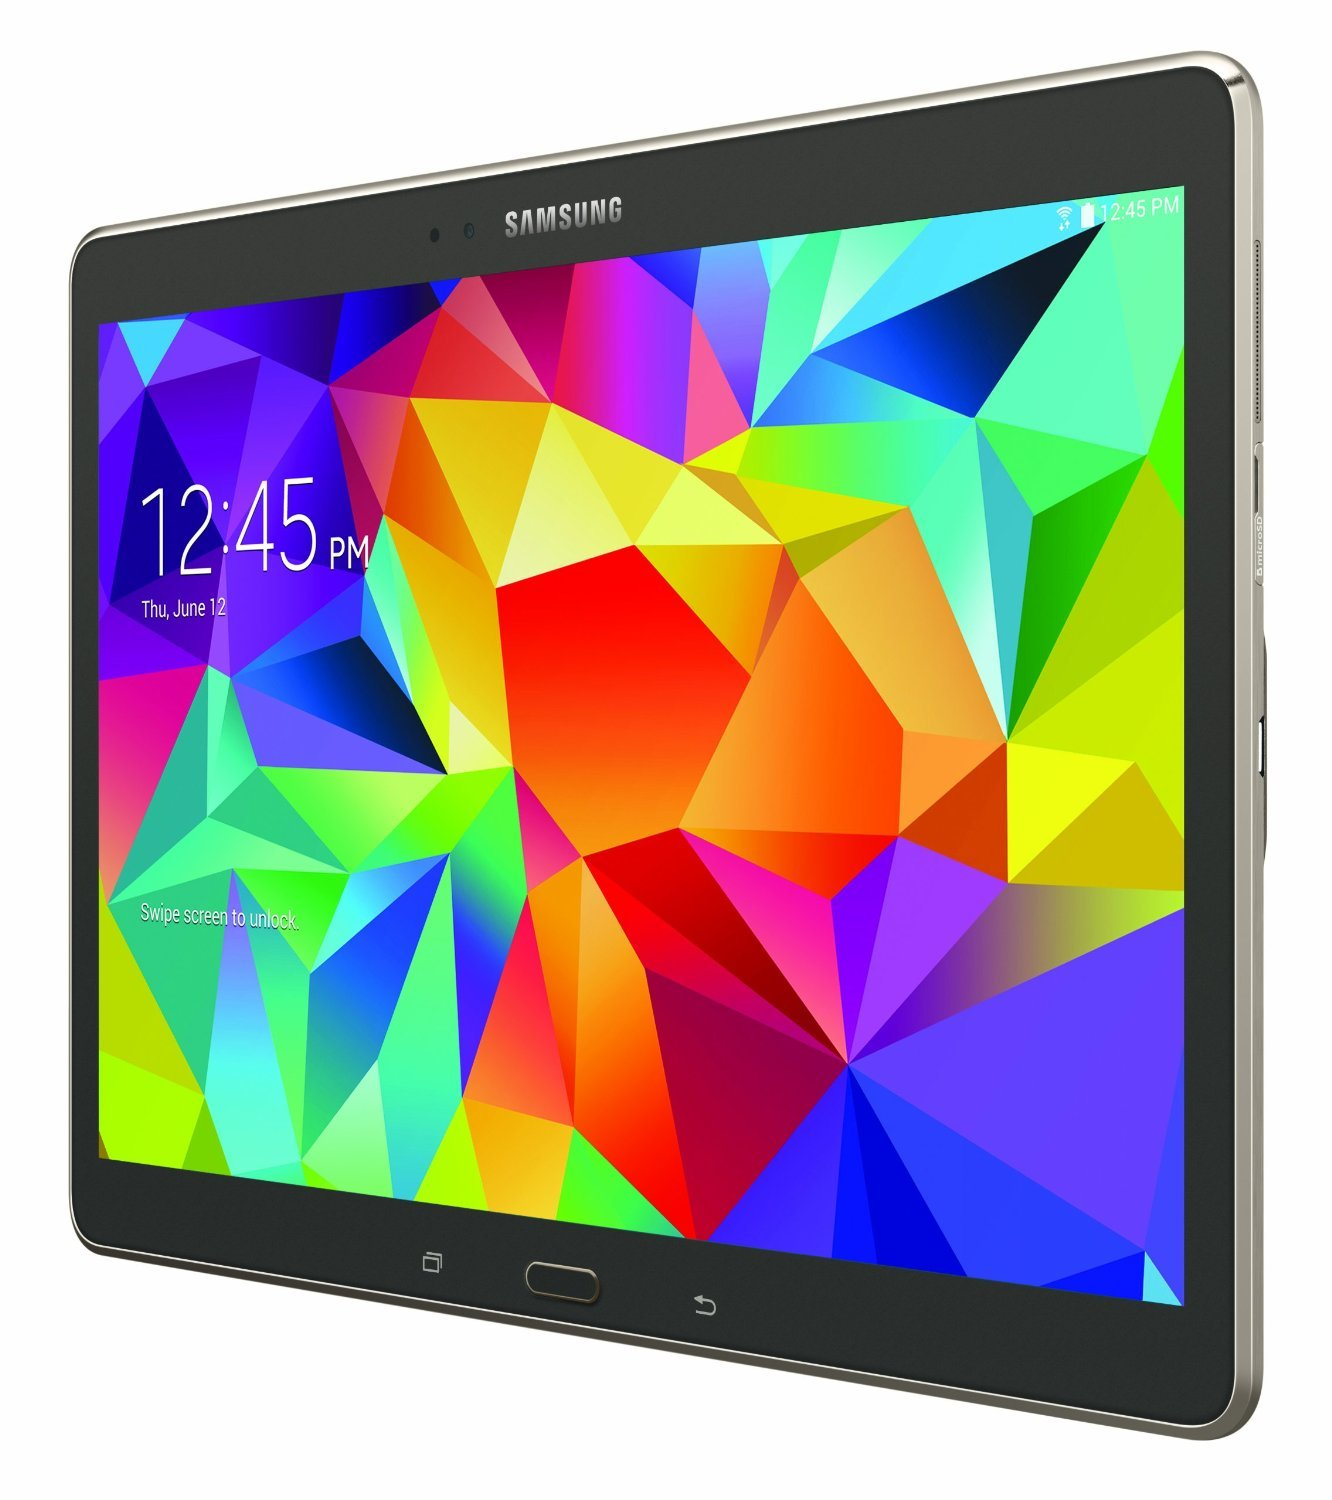 Samsung Galaxy Tab S SM T805 Tablet 10 5 inches 16GB WiFi 3G 4G LTE Voice Calling Titanium Bronze Amazon Electronics